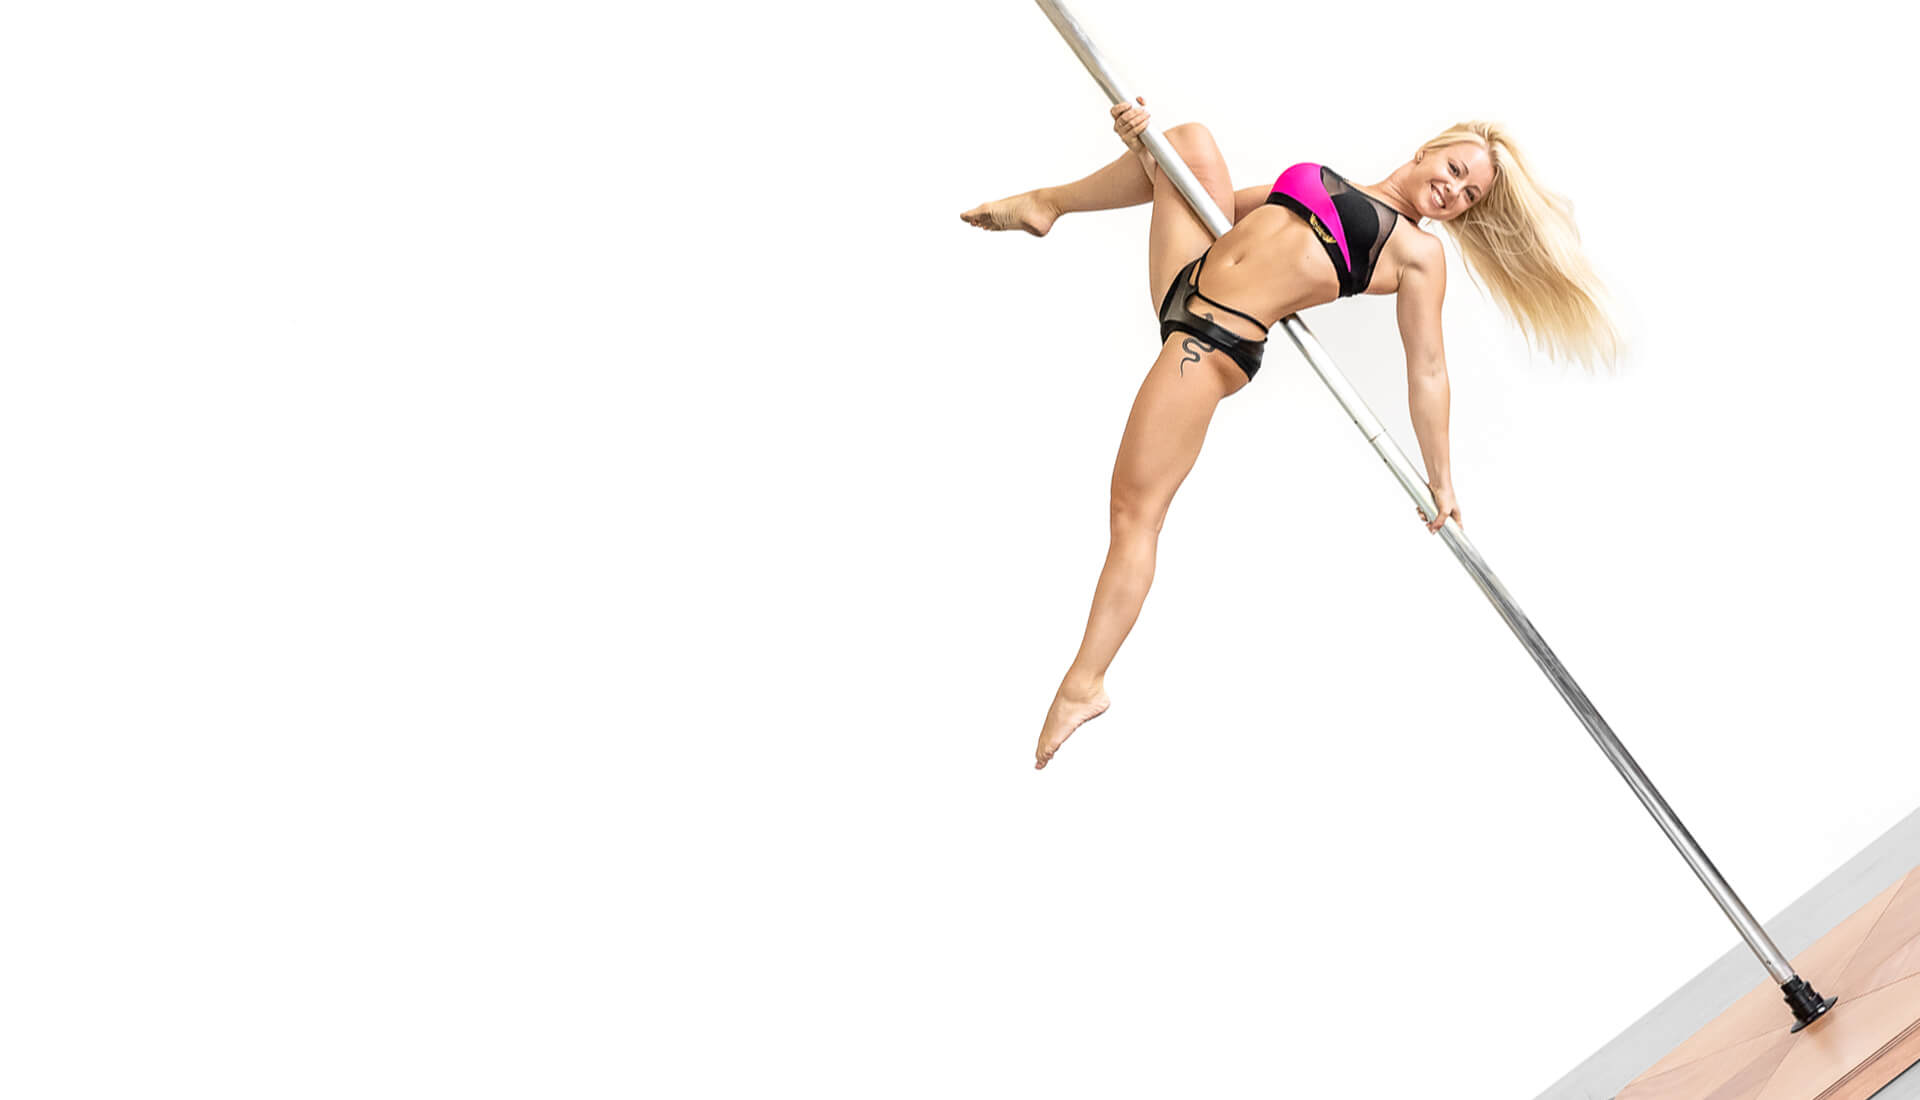 Pedana pole dance inox